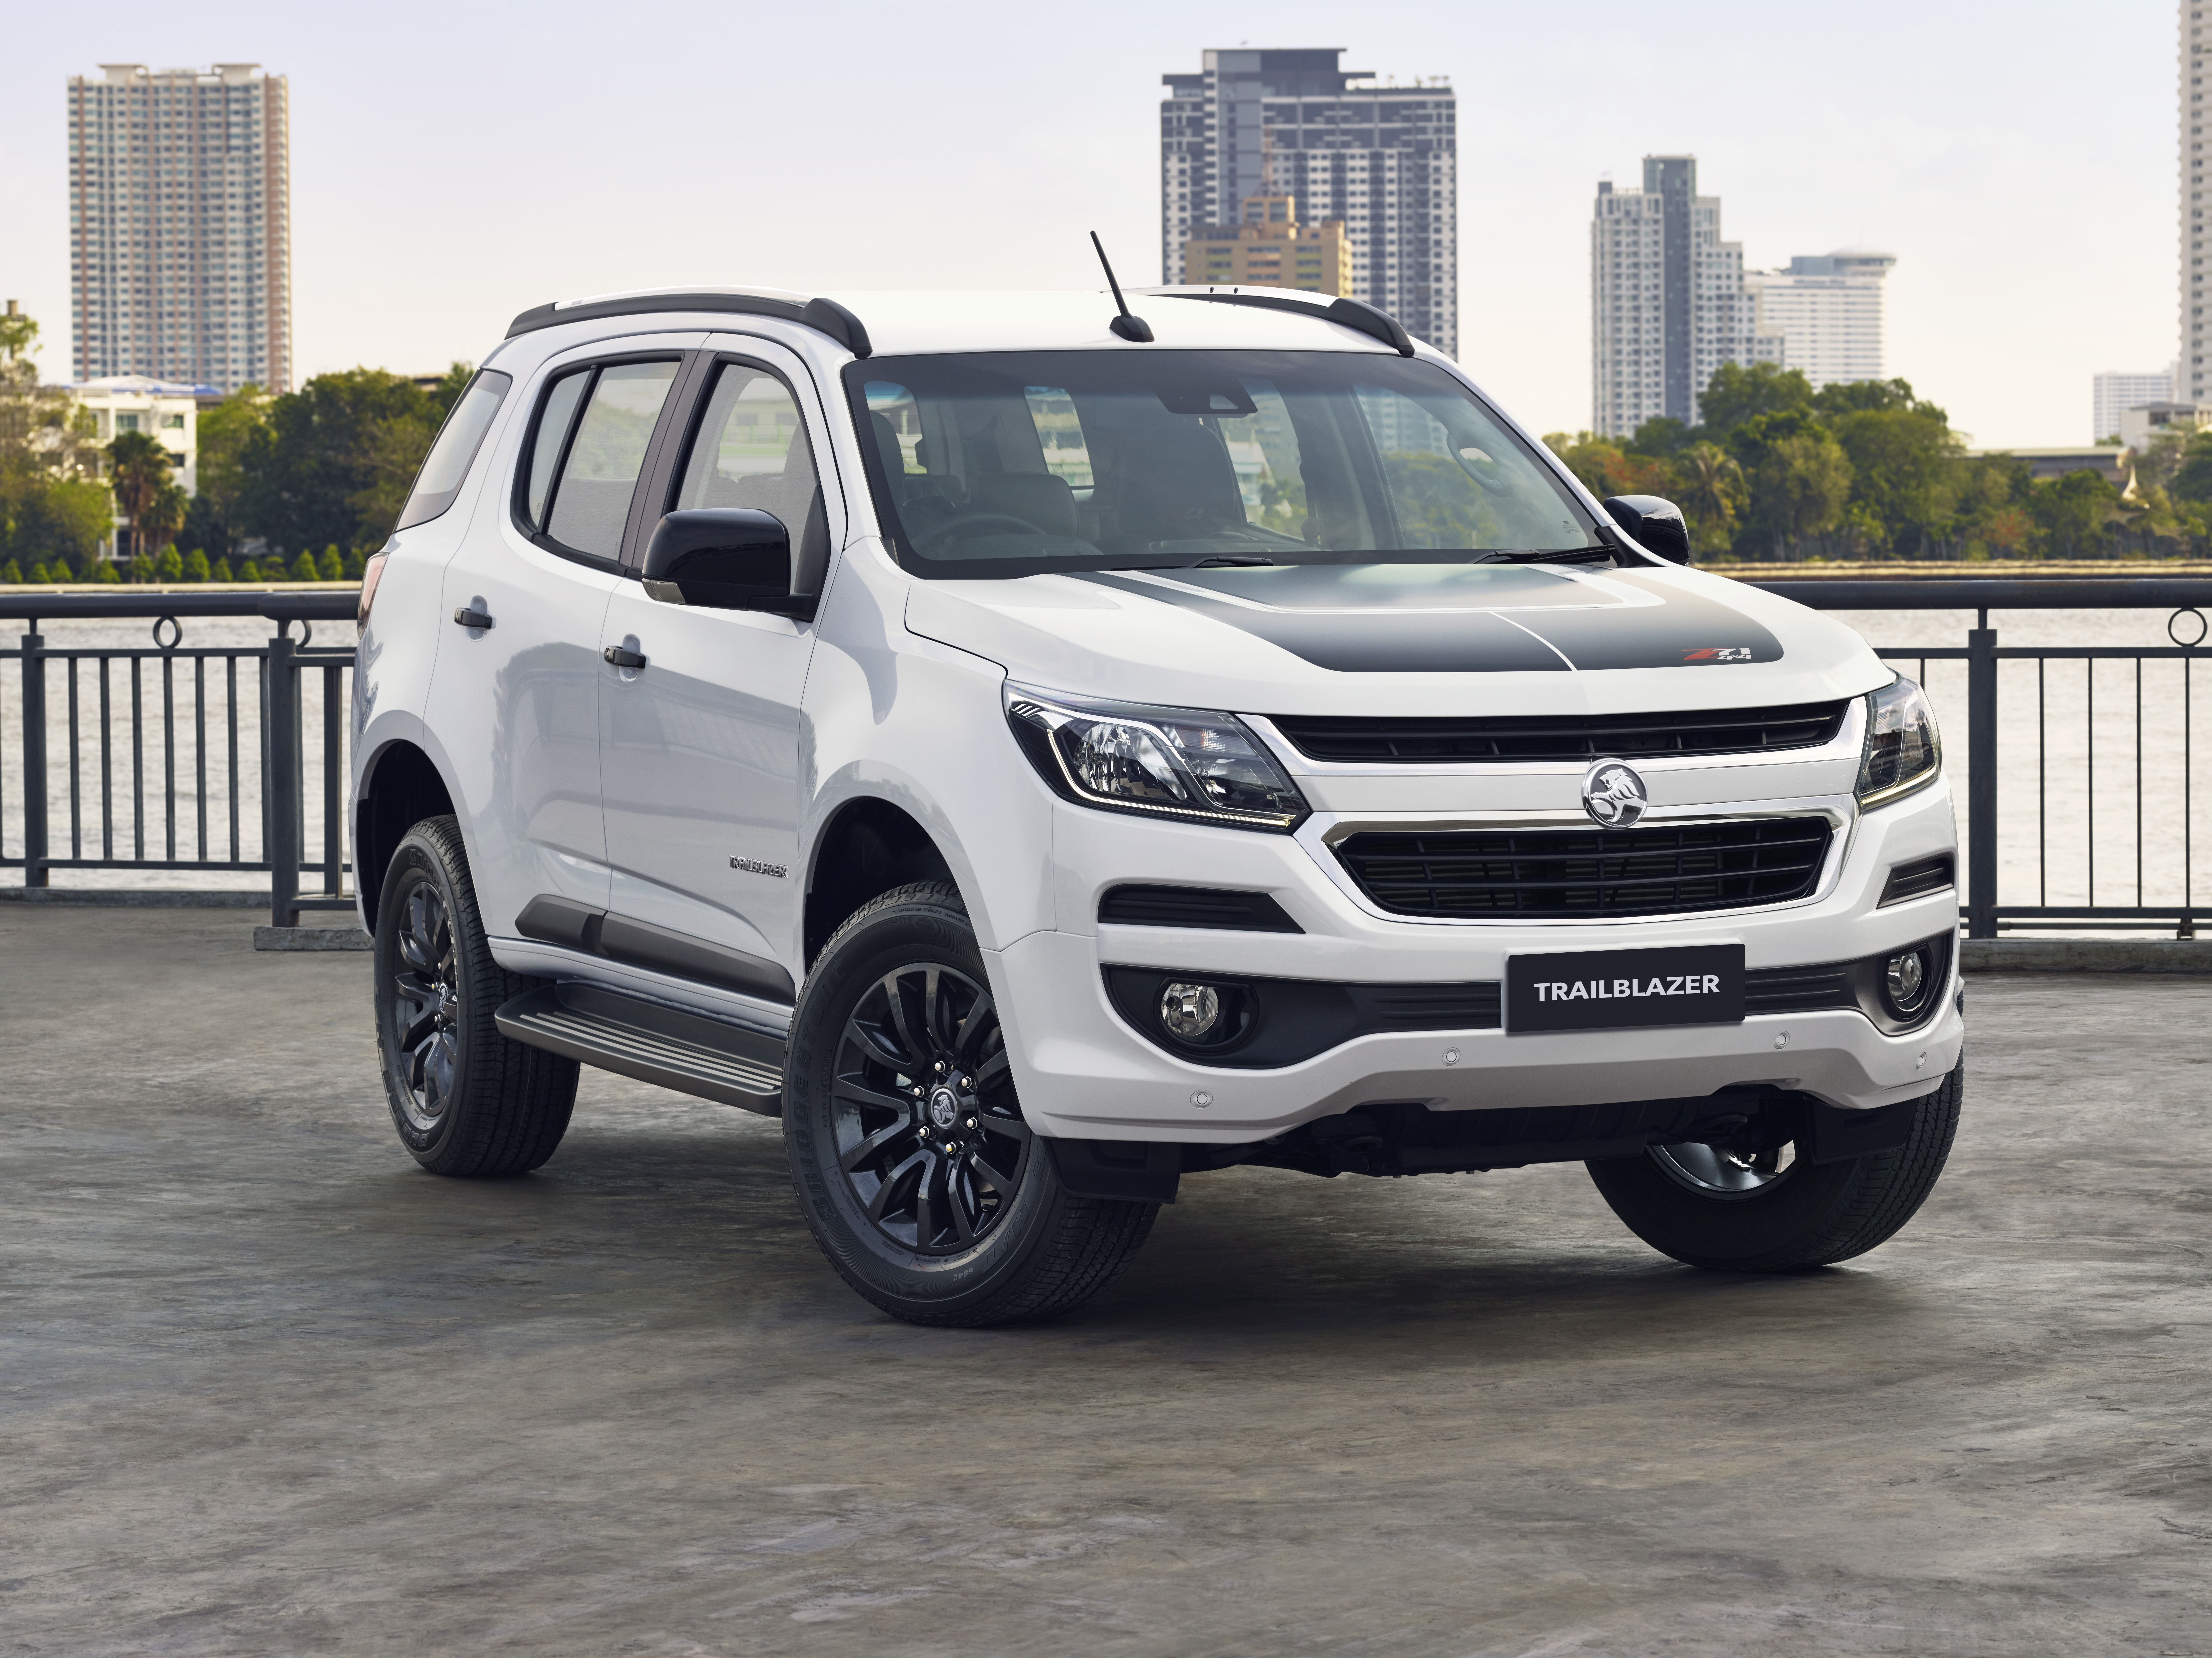 5 Reasons to Buy a Holden Family SUV